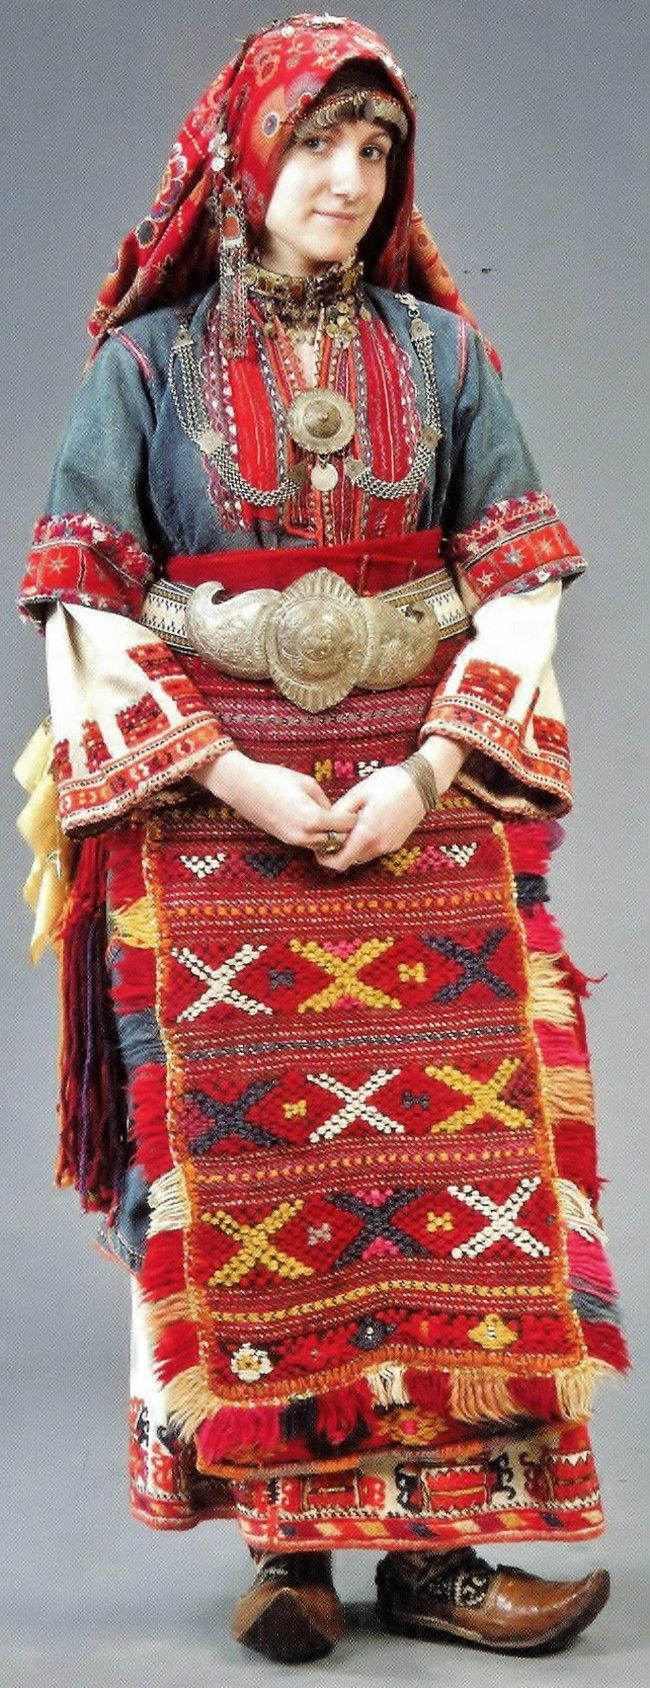 001 Traditional bridal/festive costume from the Pirin